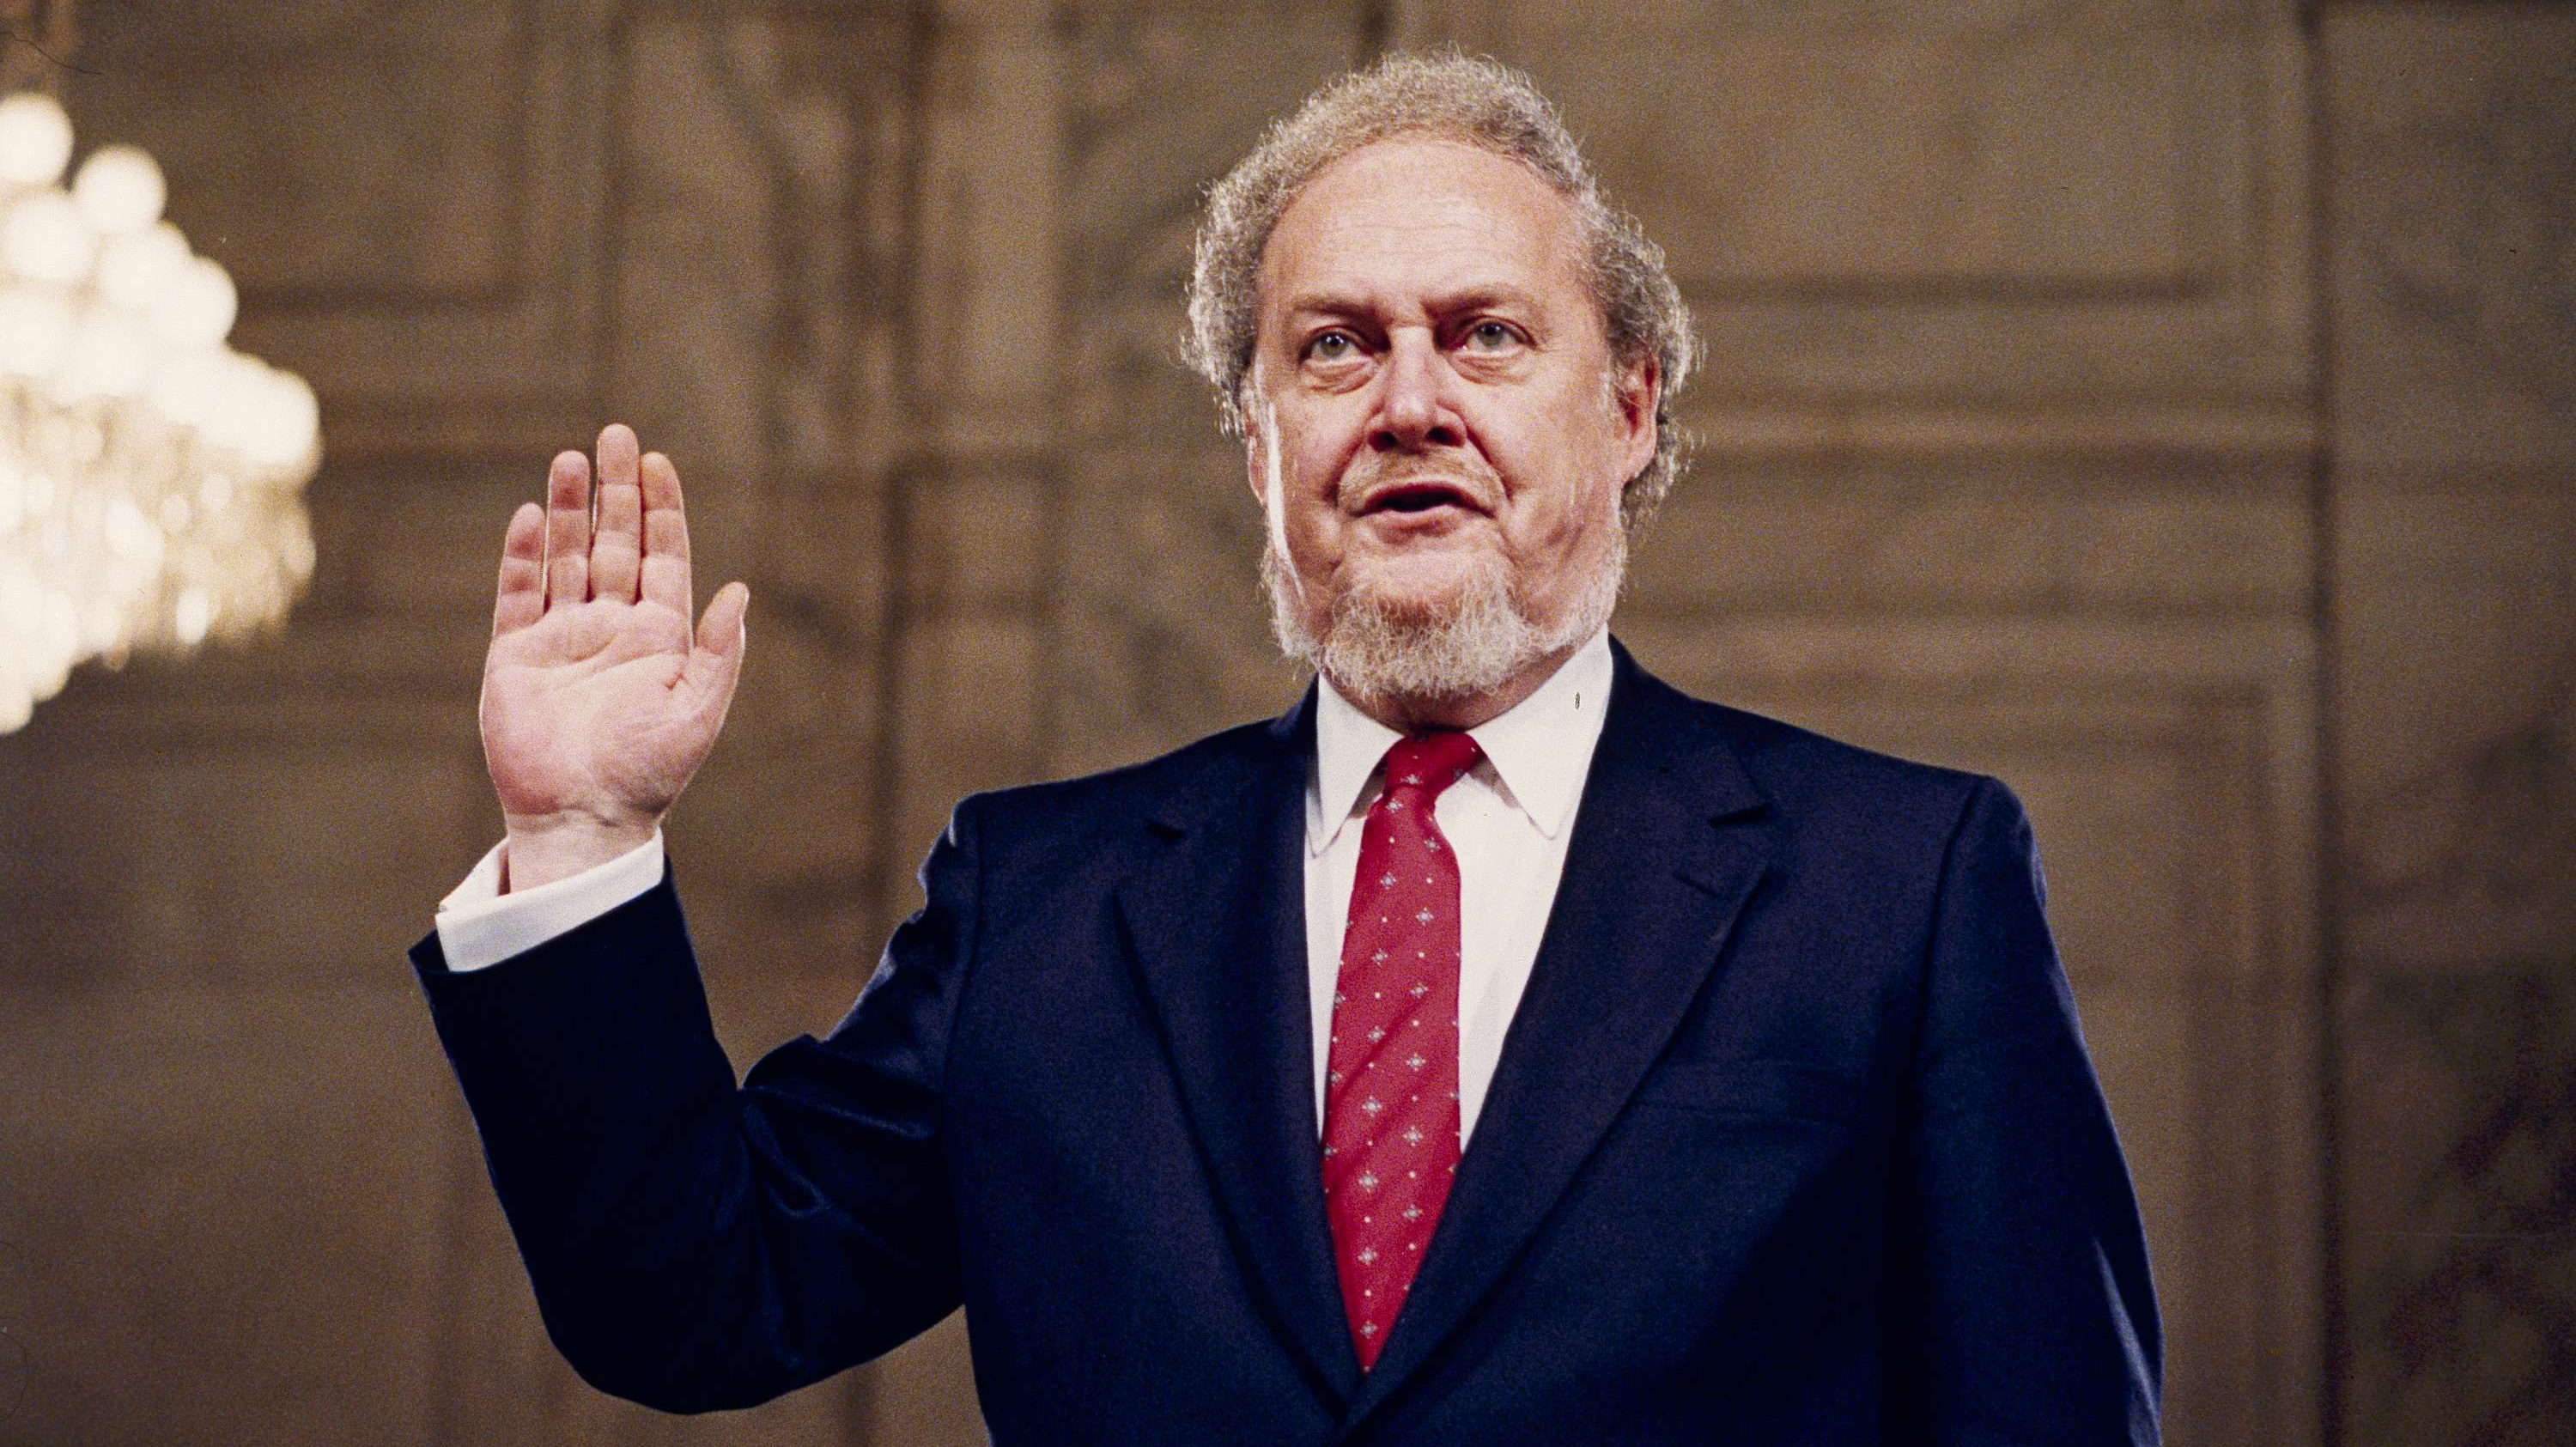 Robert Bork's Supreme Court Nomination 'Changed Everything, Maybe Forever'